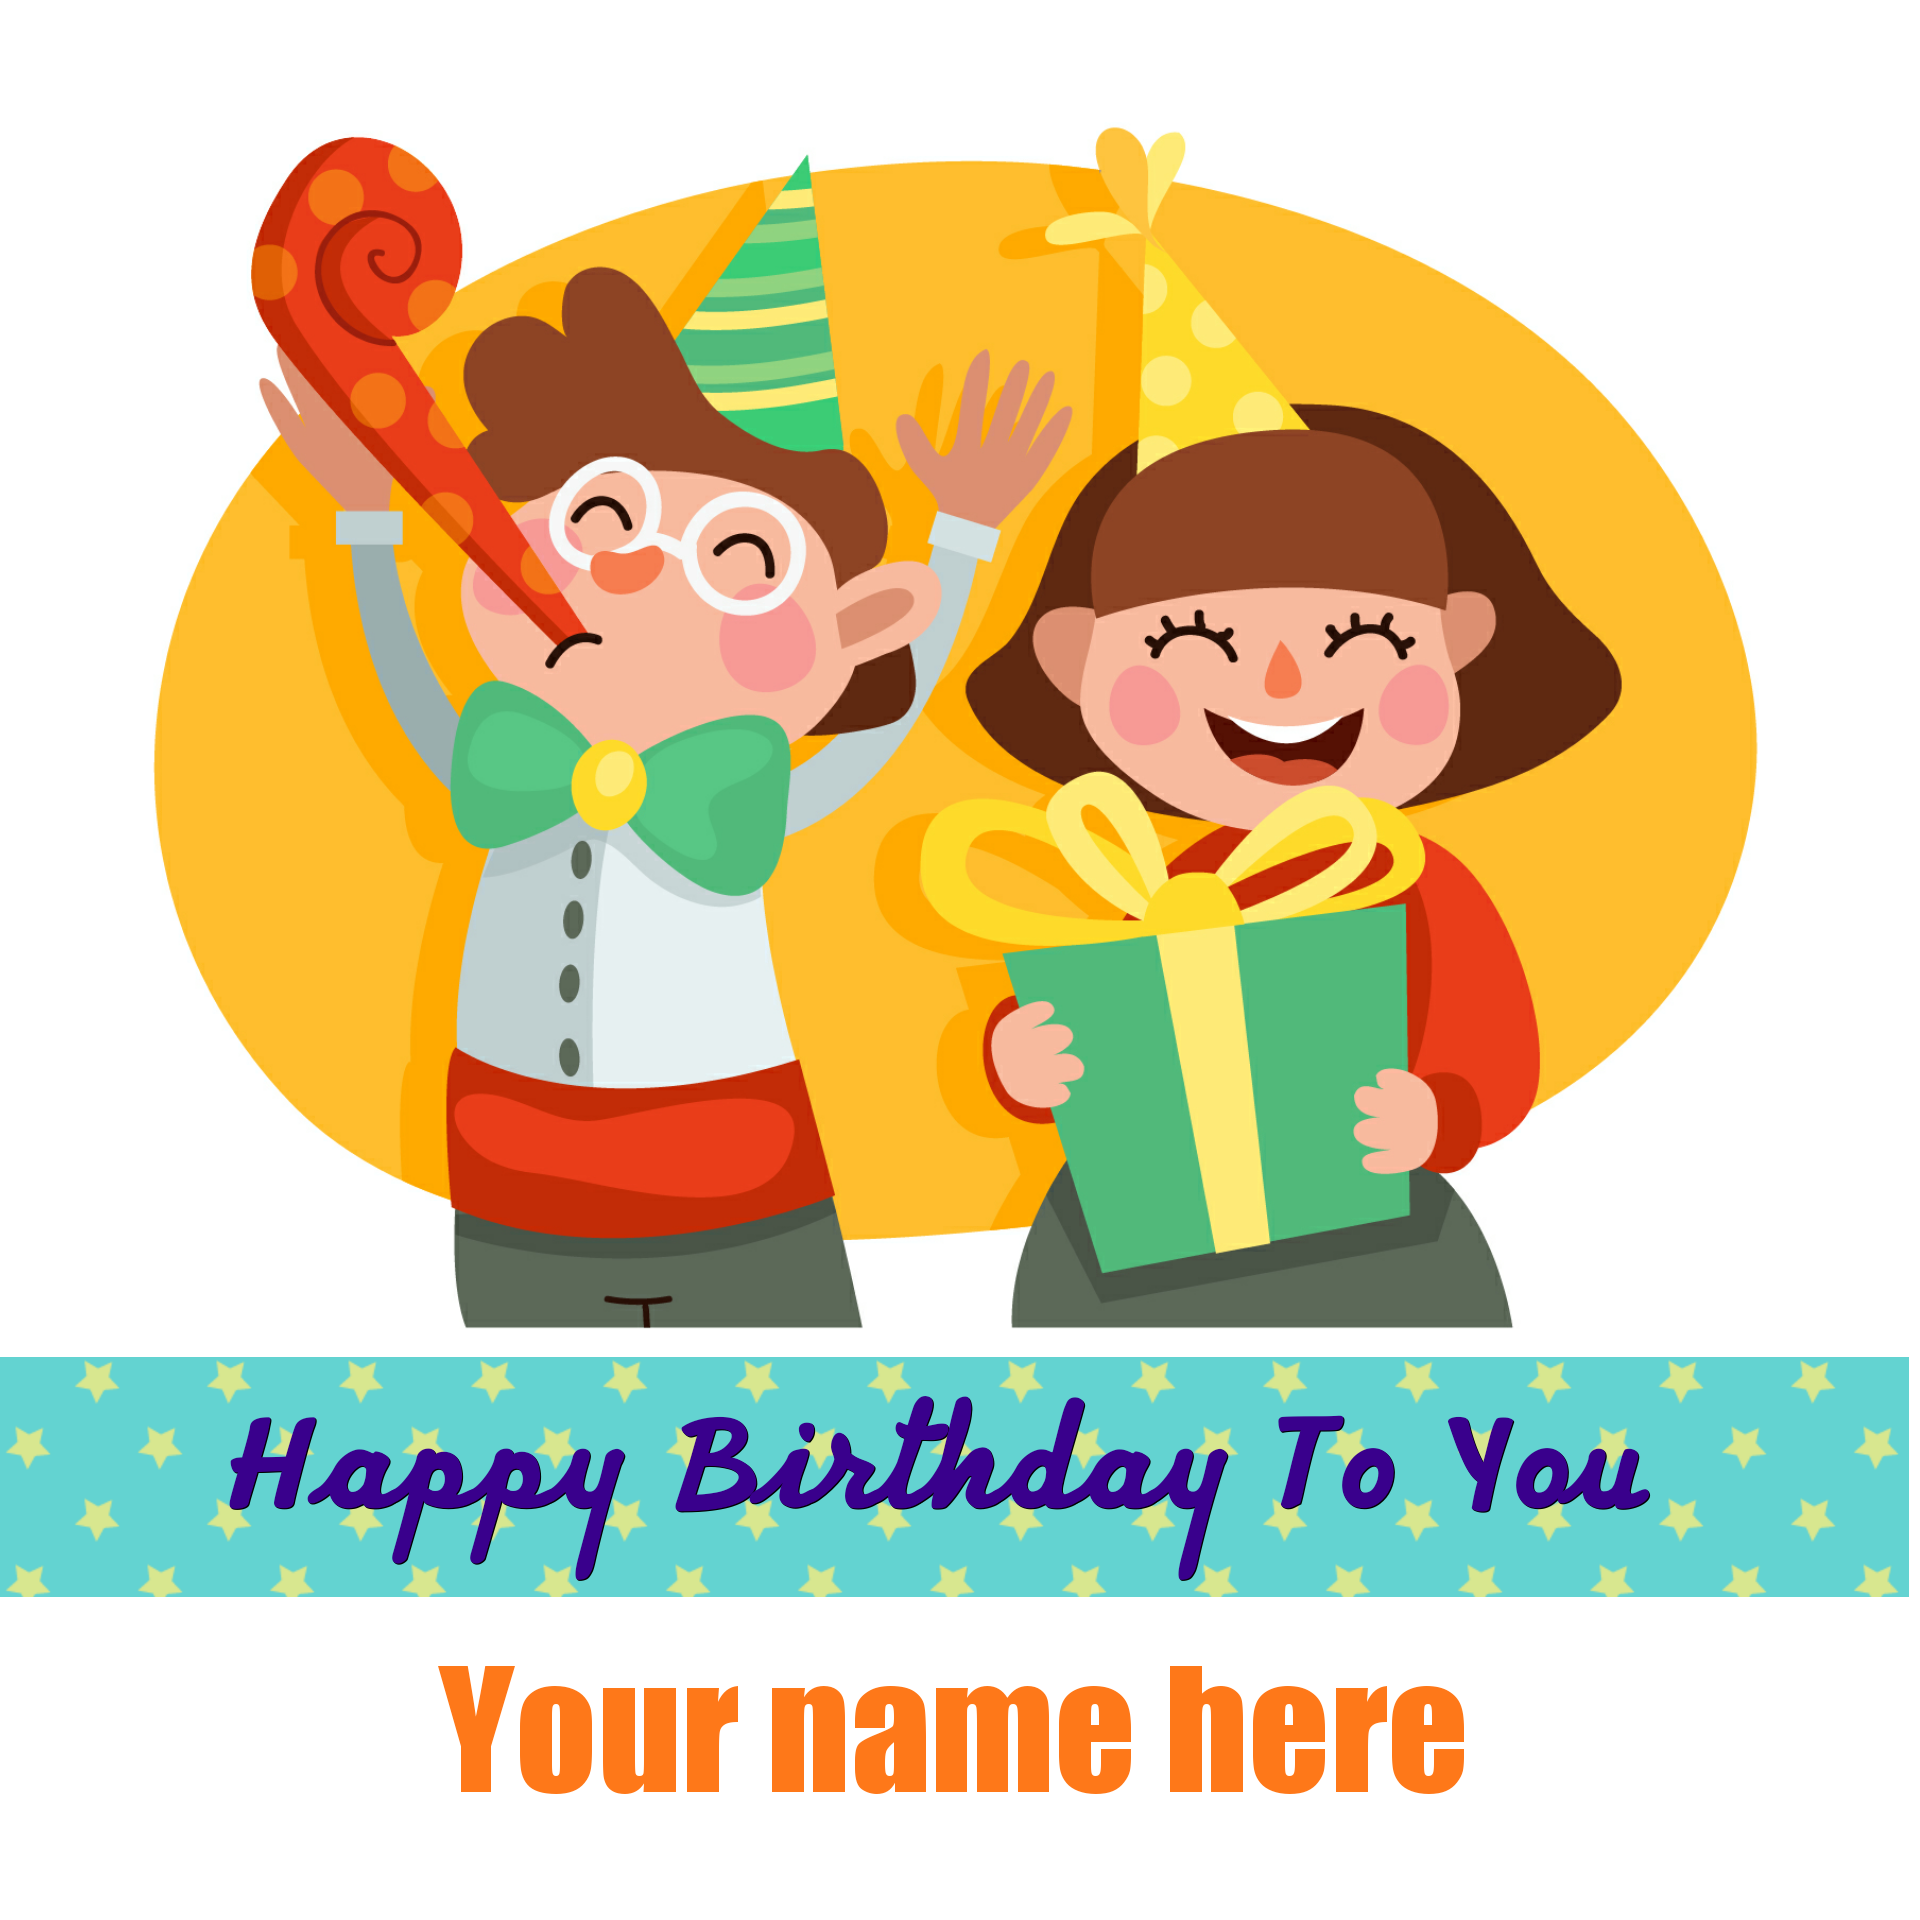 Happy birthday cute kid party pic with your name